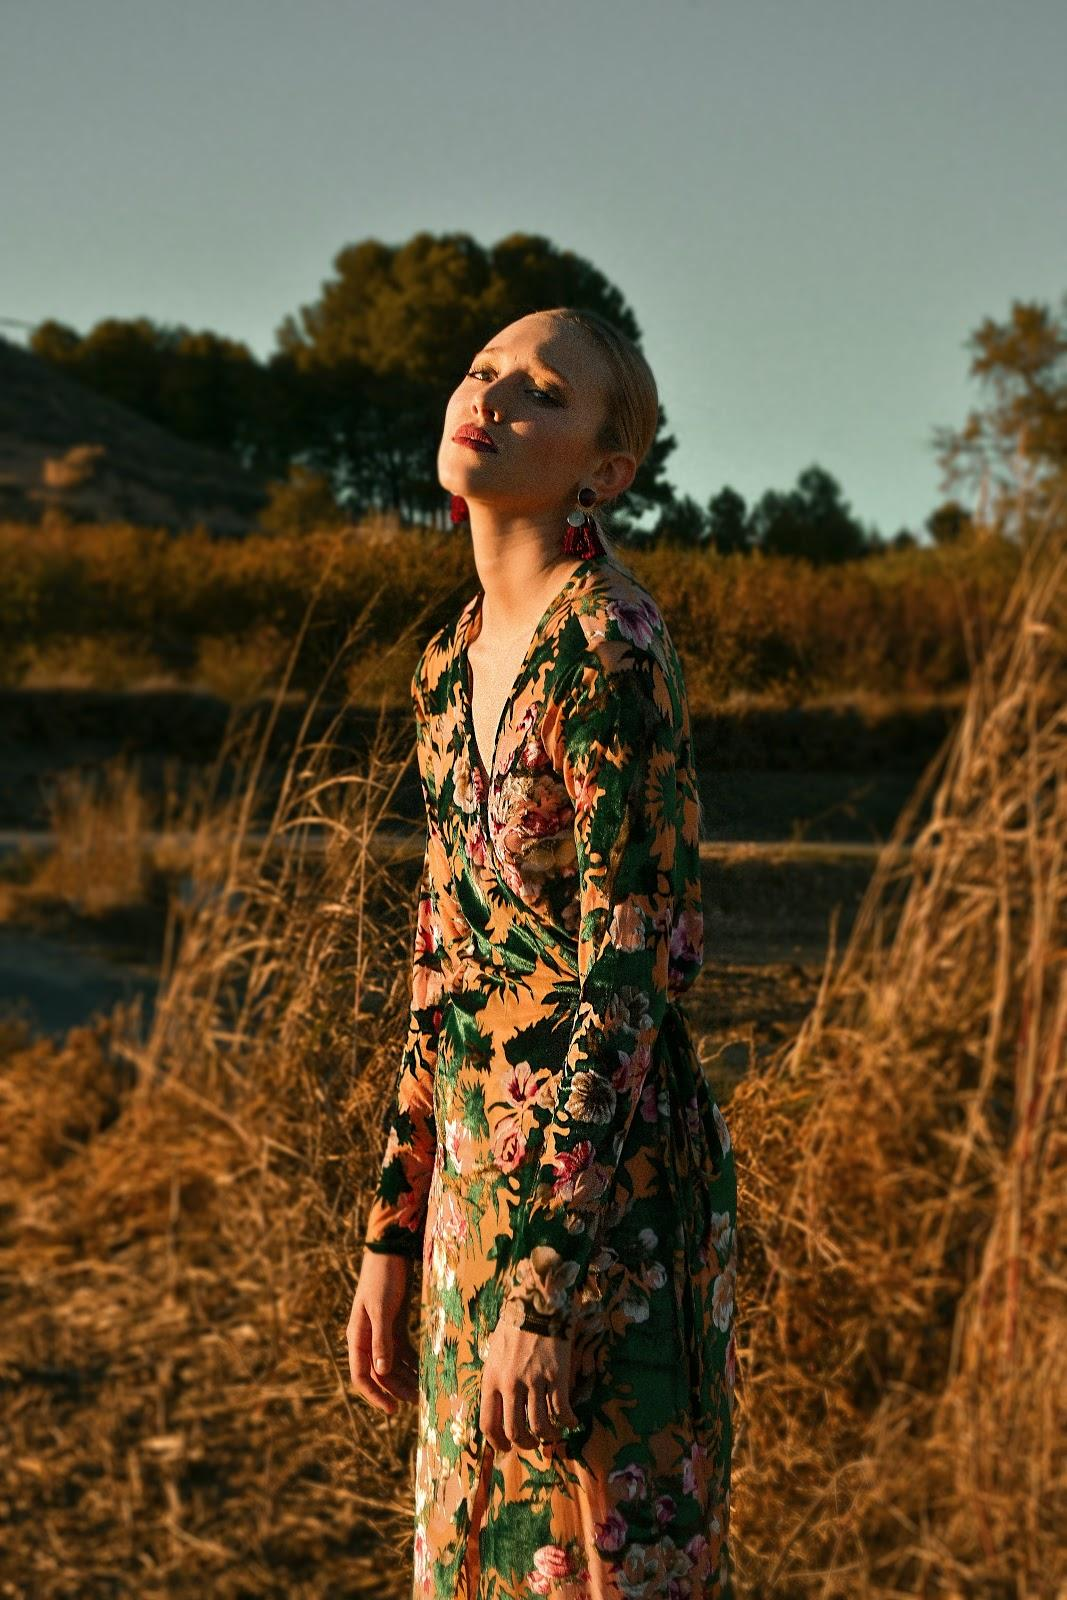 fashion photography of a girl in nature in a floral dress